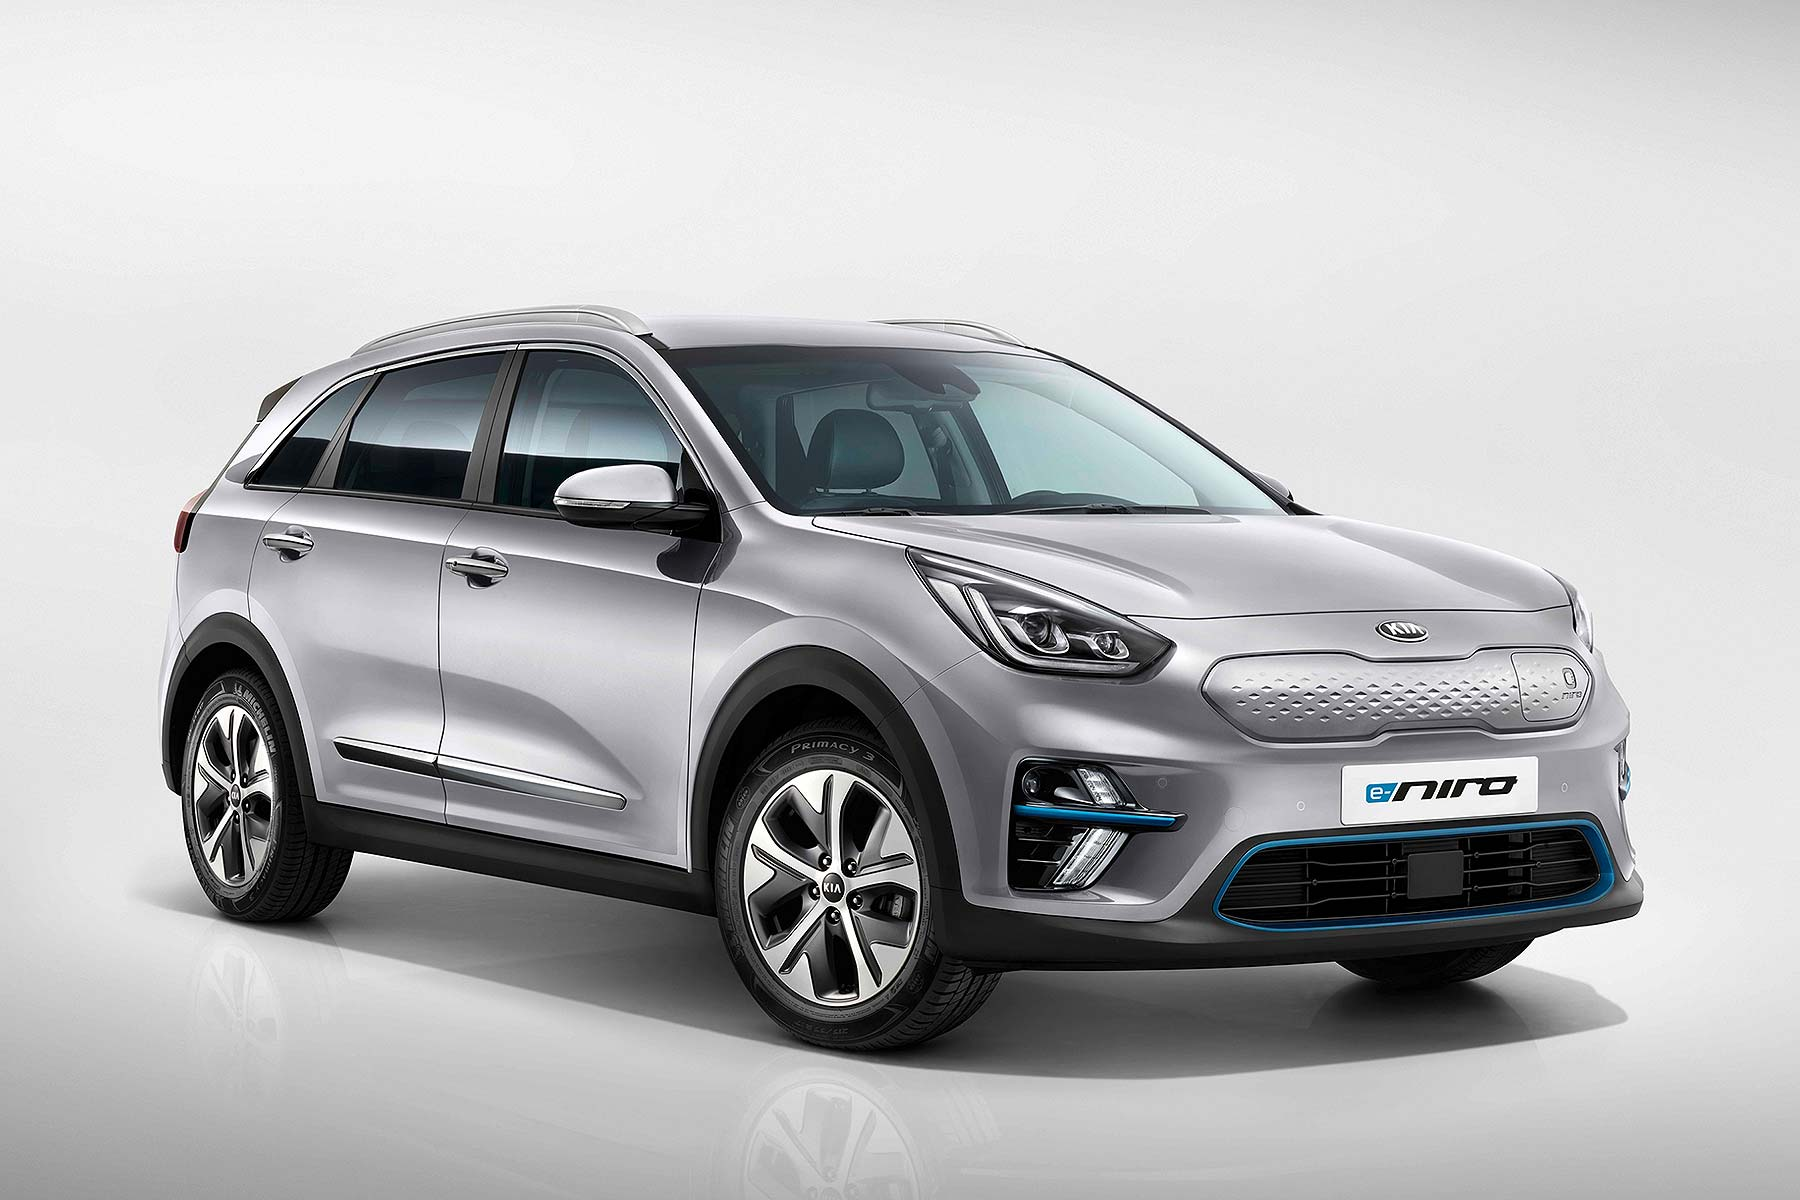 kia corrects electric range of new e niro after test error discovered motoring research. Black Bedroom Furniture Sets. Home Design Ideas